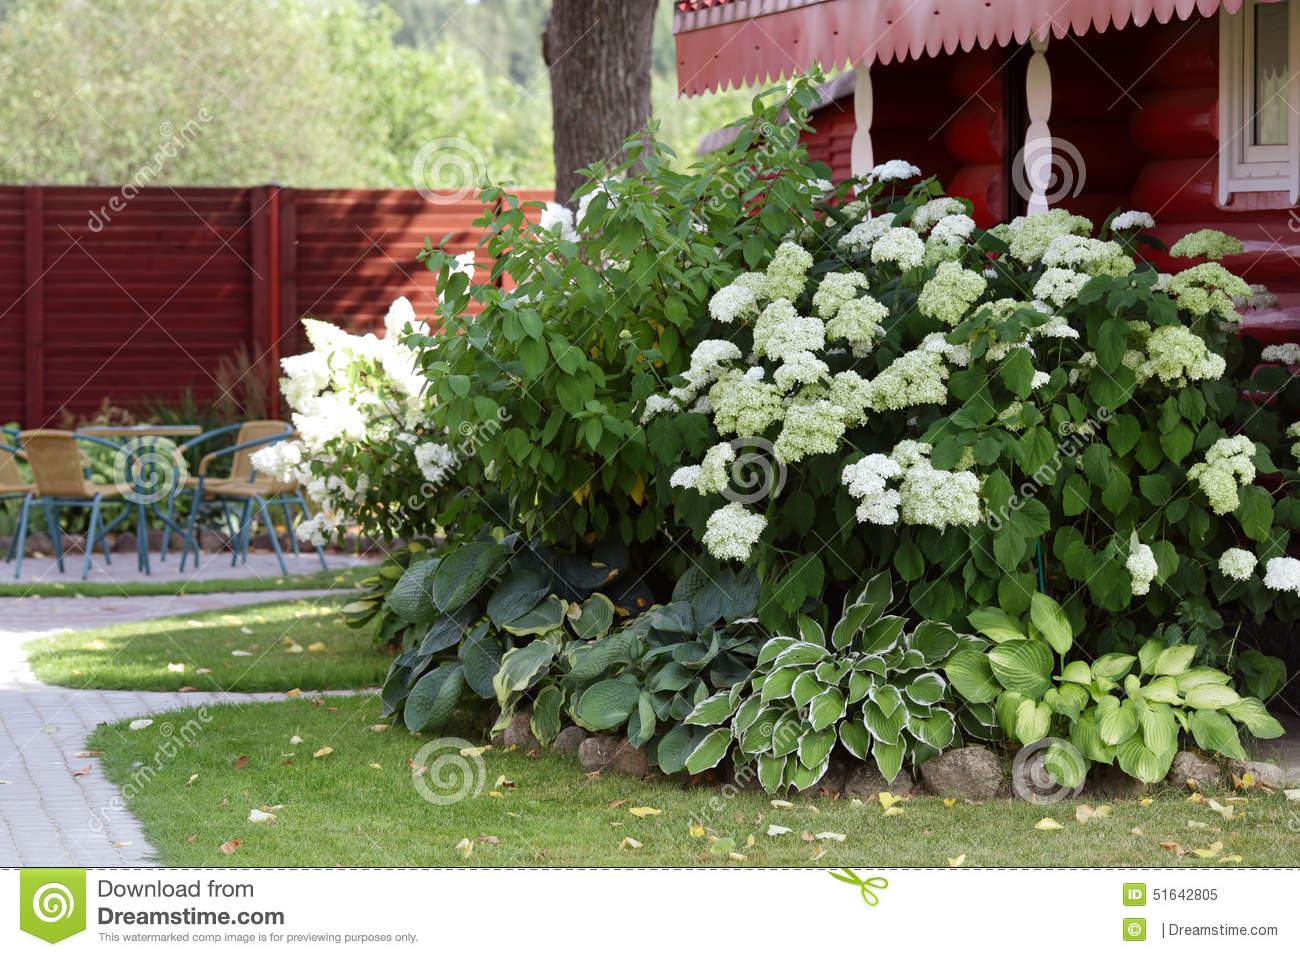 Buisson blanc d 39 hortensia dans le jardin photo stock for Jardines con hortensias